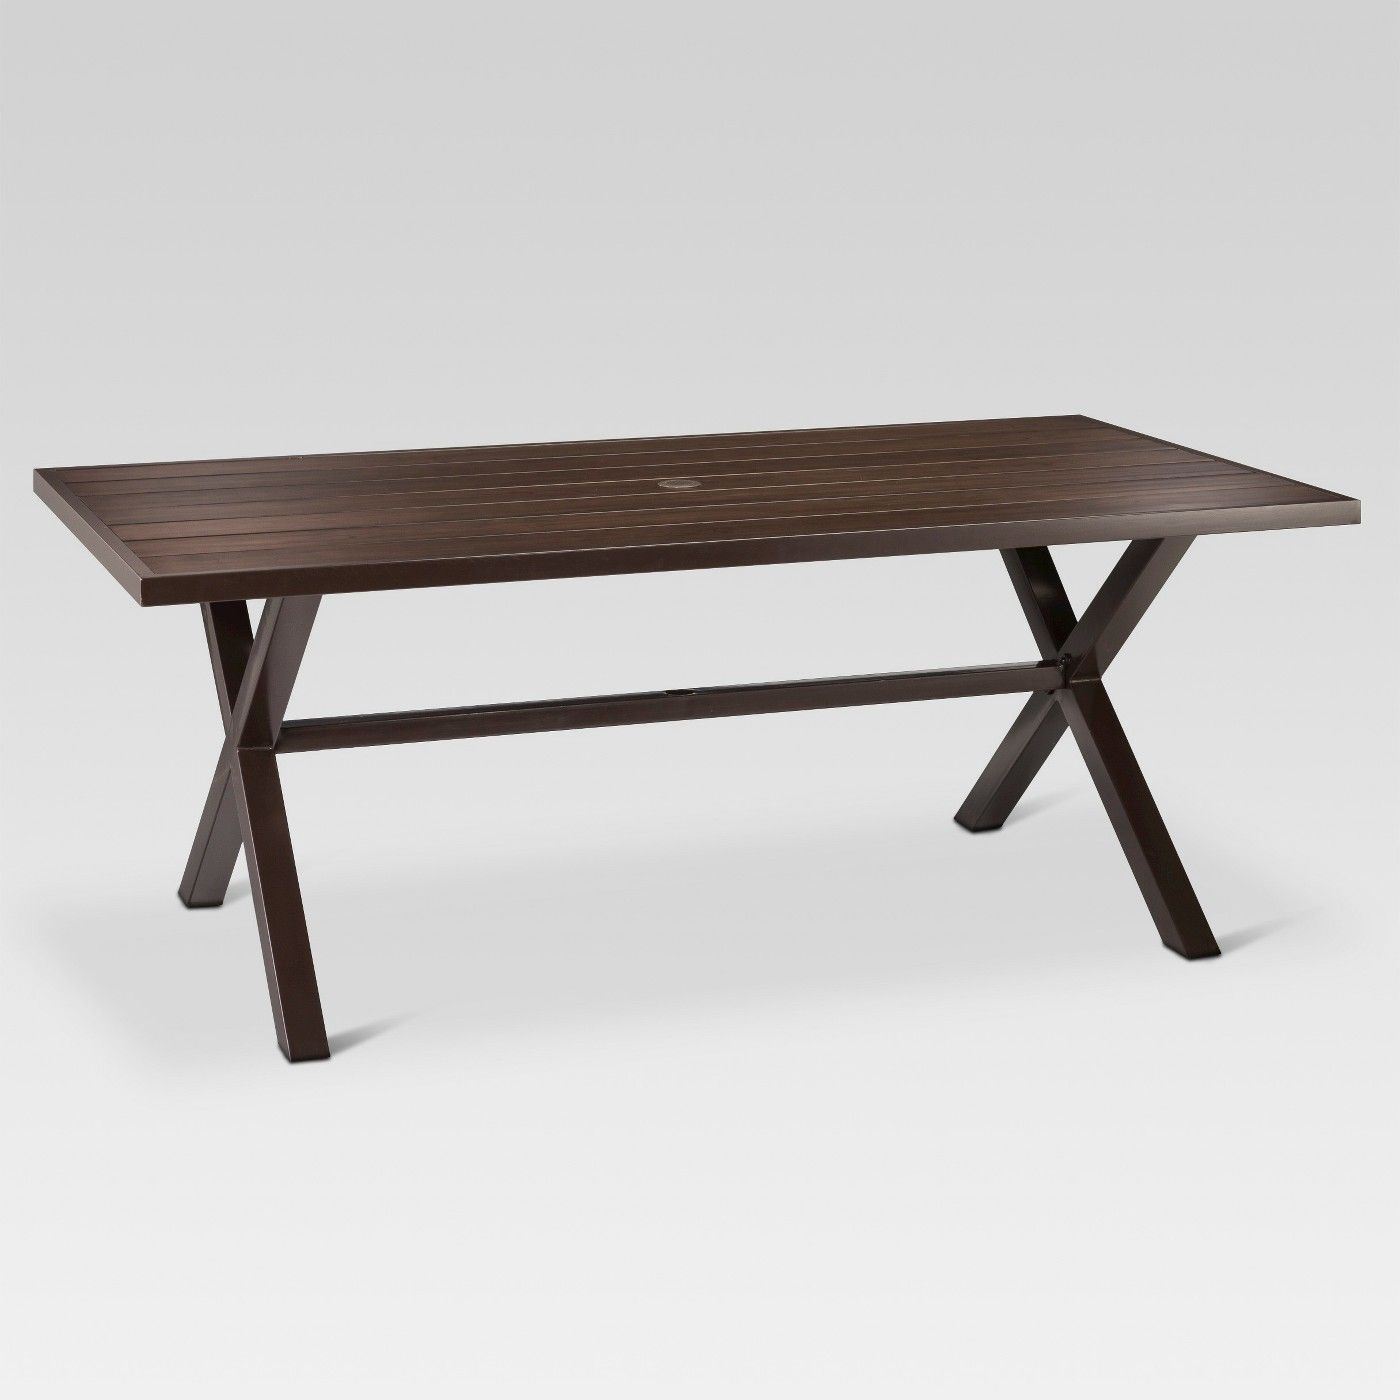 0e19aecc53614 Mayhew Aluminum Top X-Base Rectangle Patio Dining Table - Brown -  Threshold™ - image 2 of 3